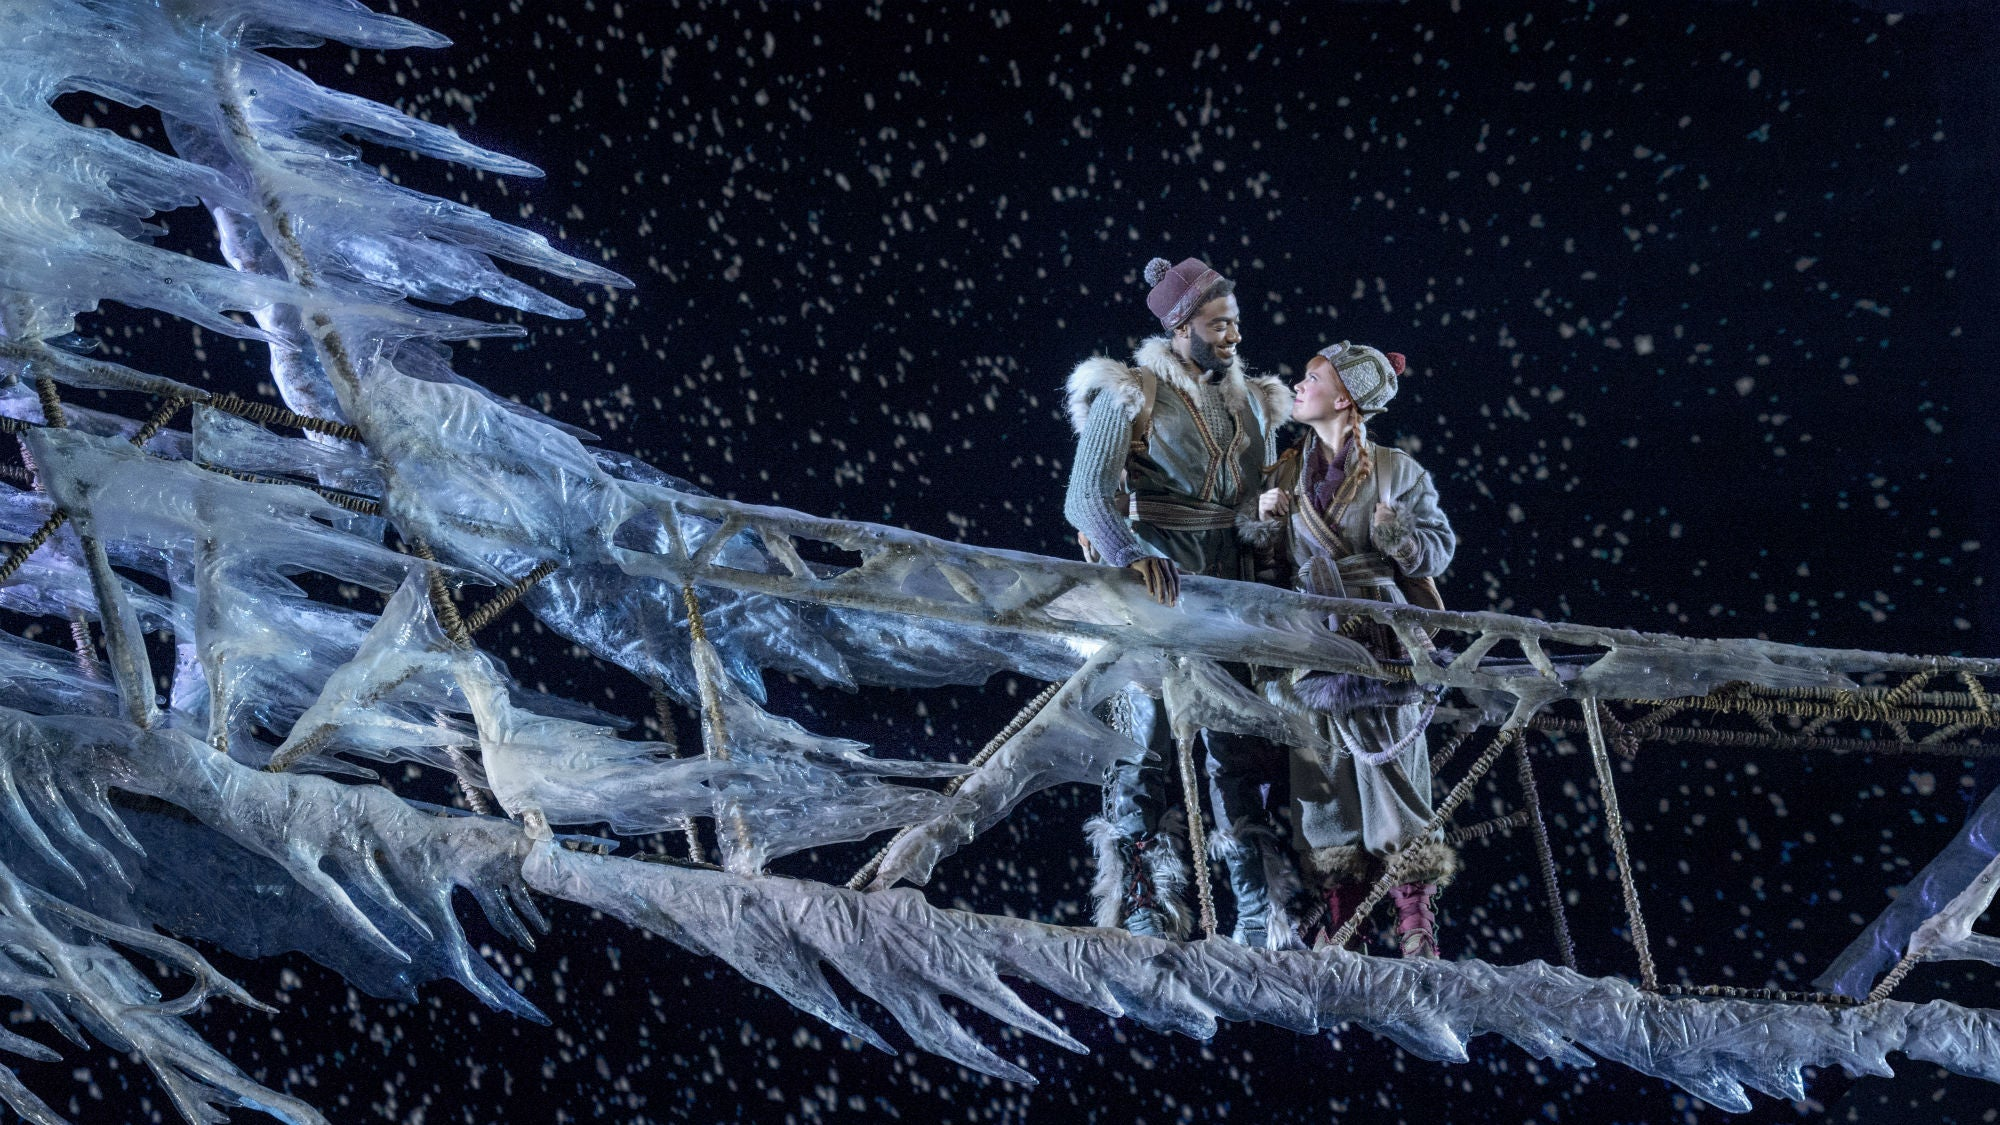 The Broadway Production Of Disney's Frozen Looks Predictably Beautiful